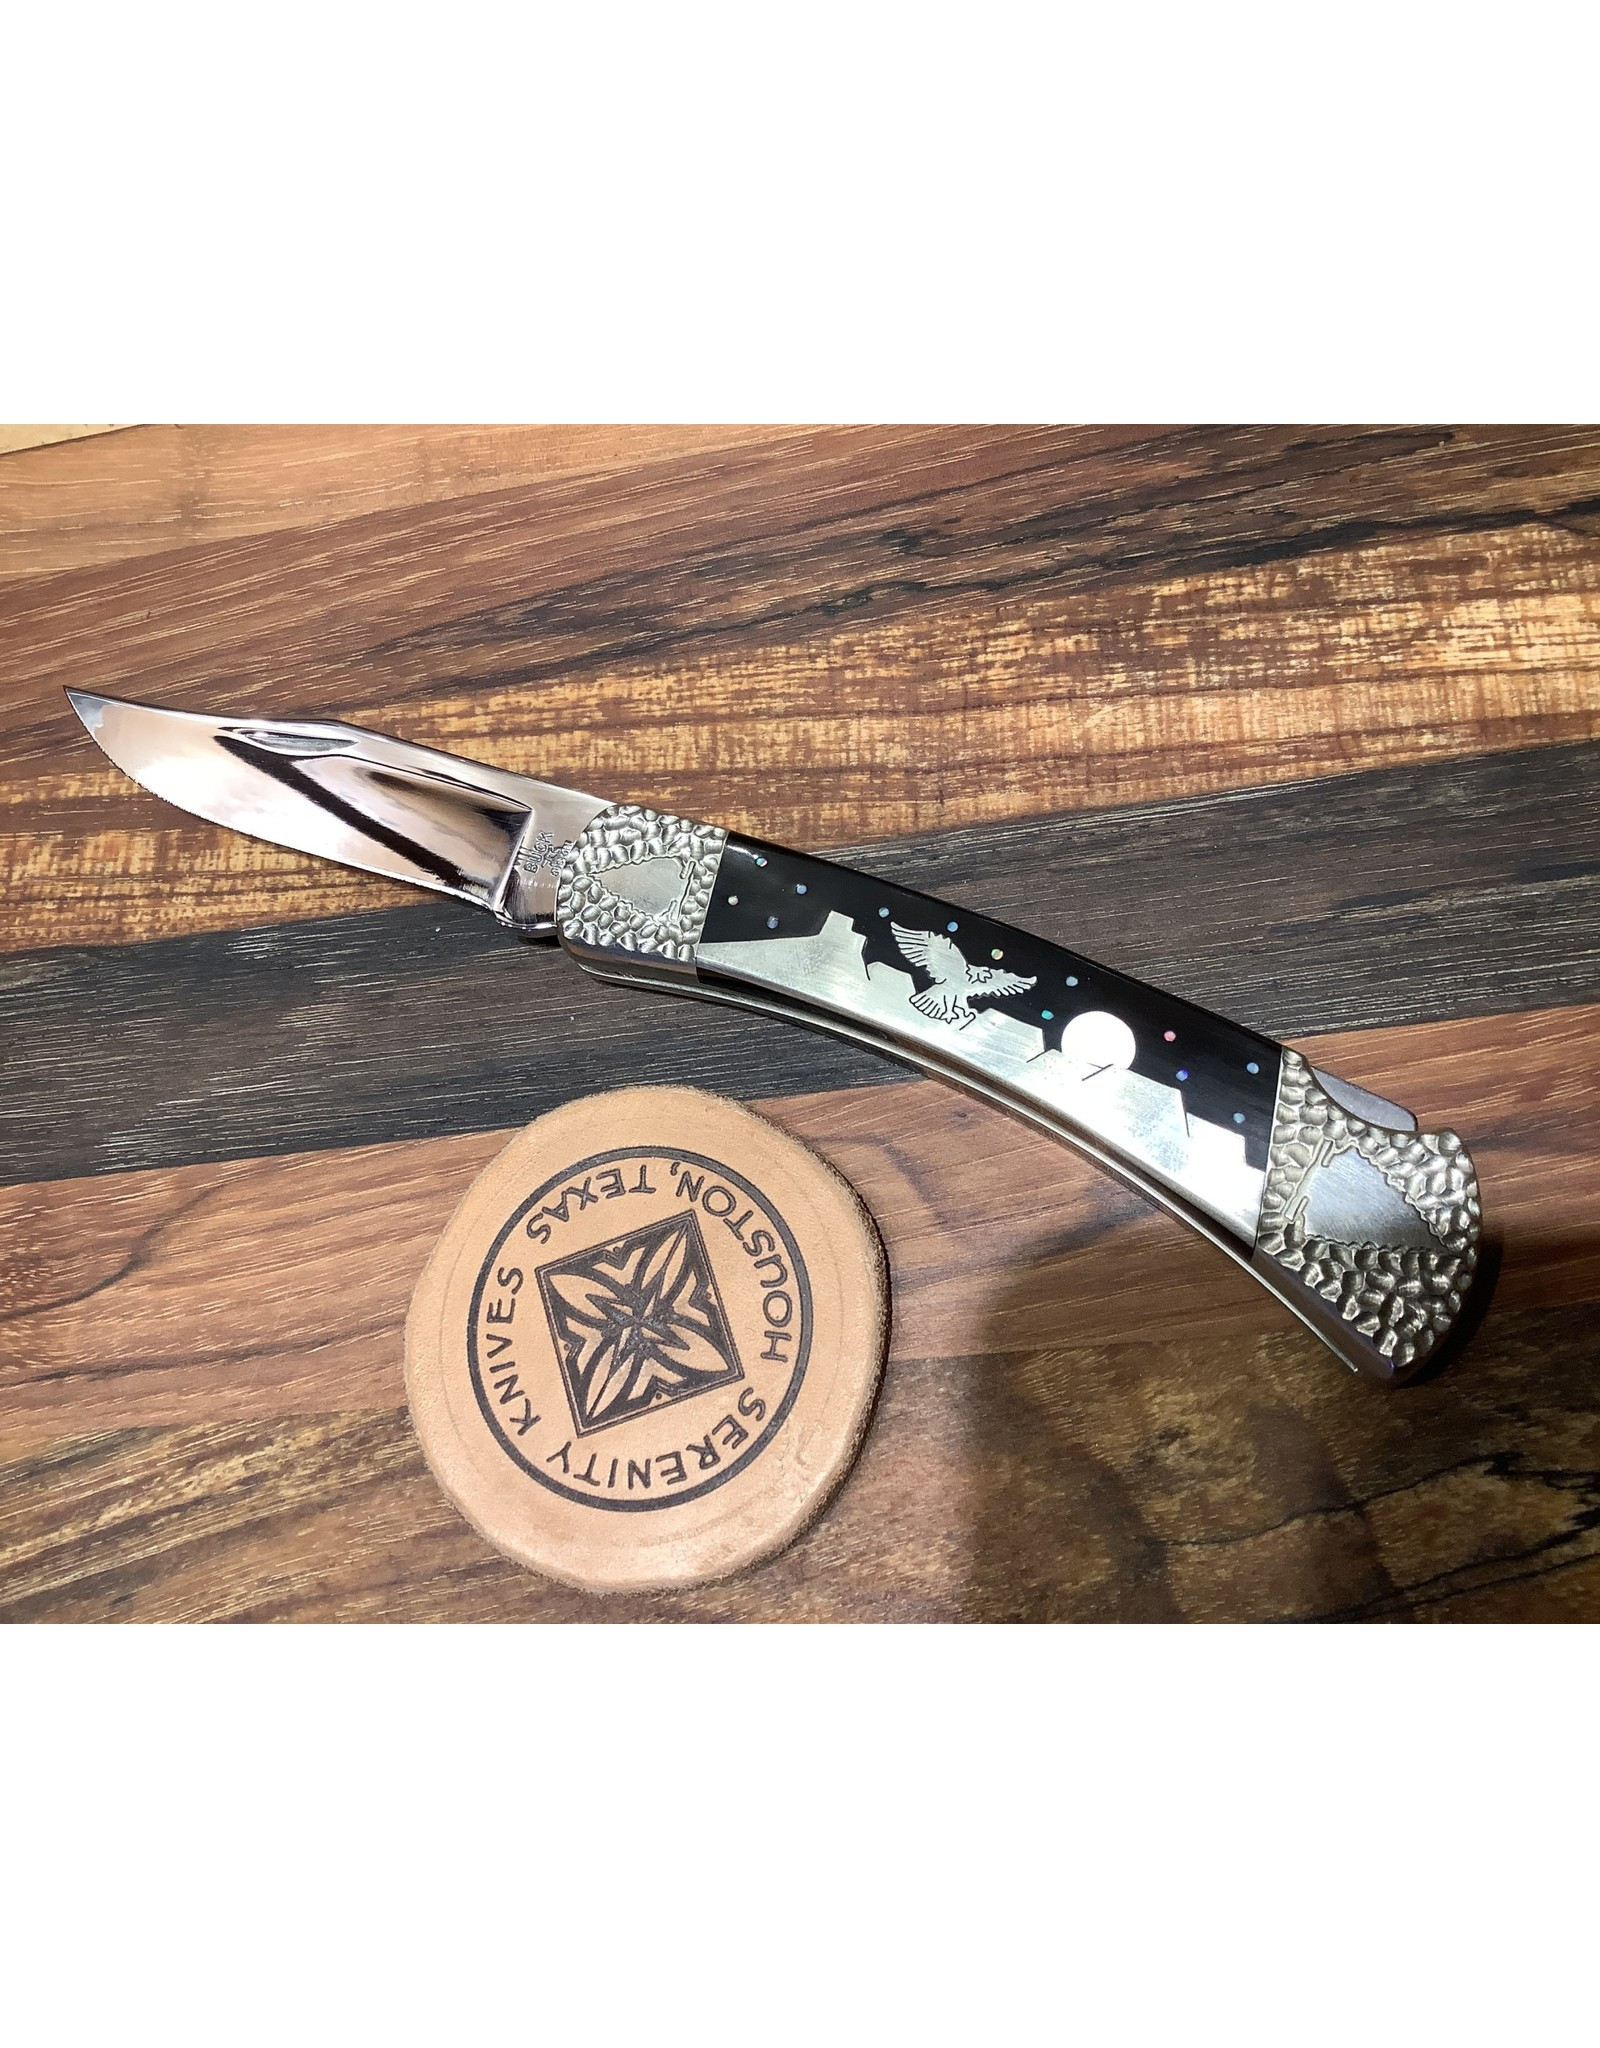 Consignment BUCK DY Gray Eagle Duke 110